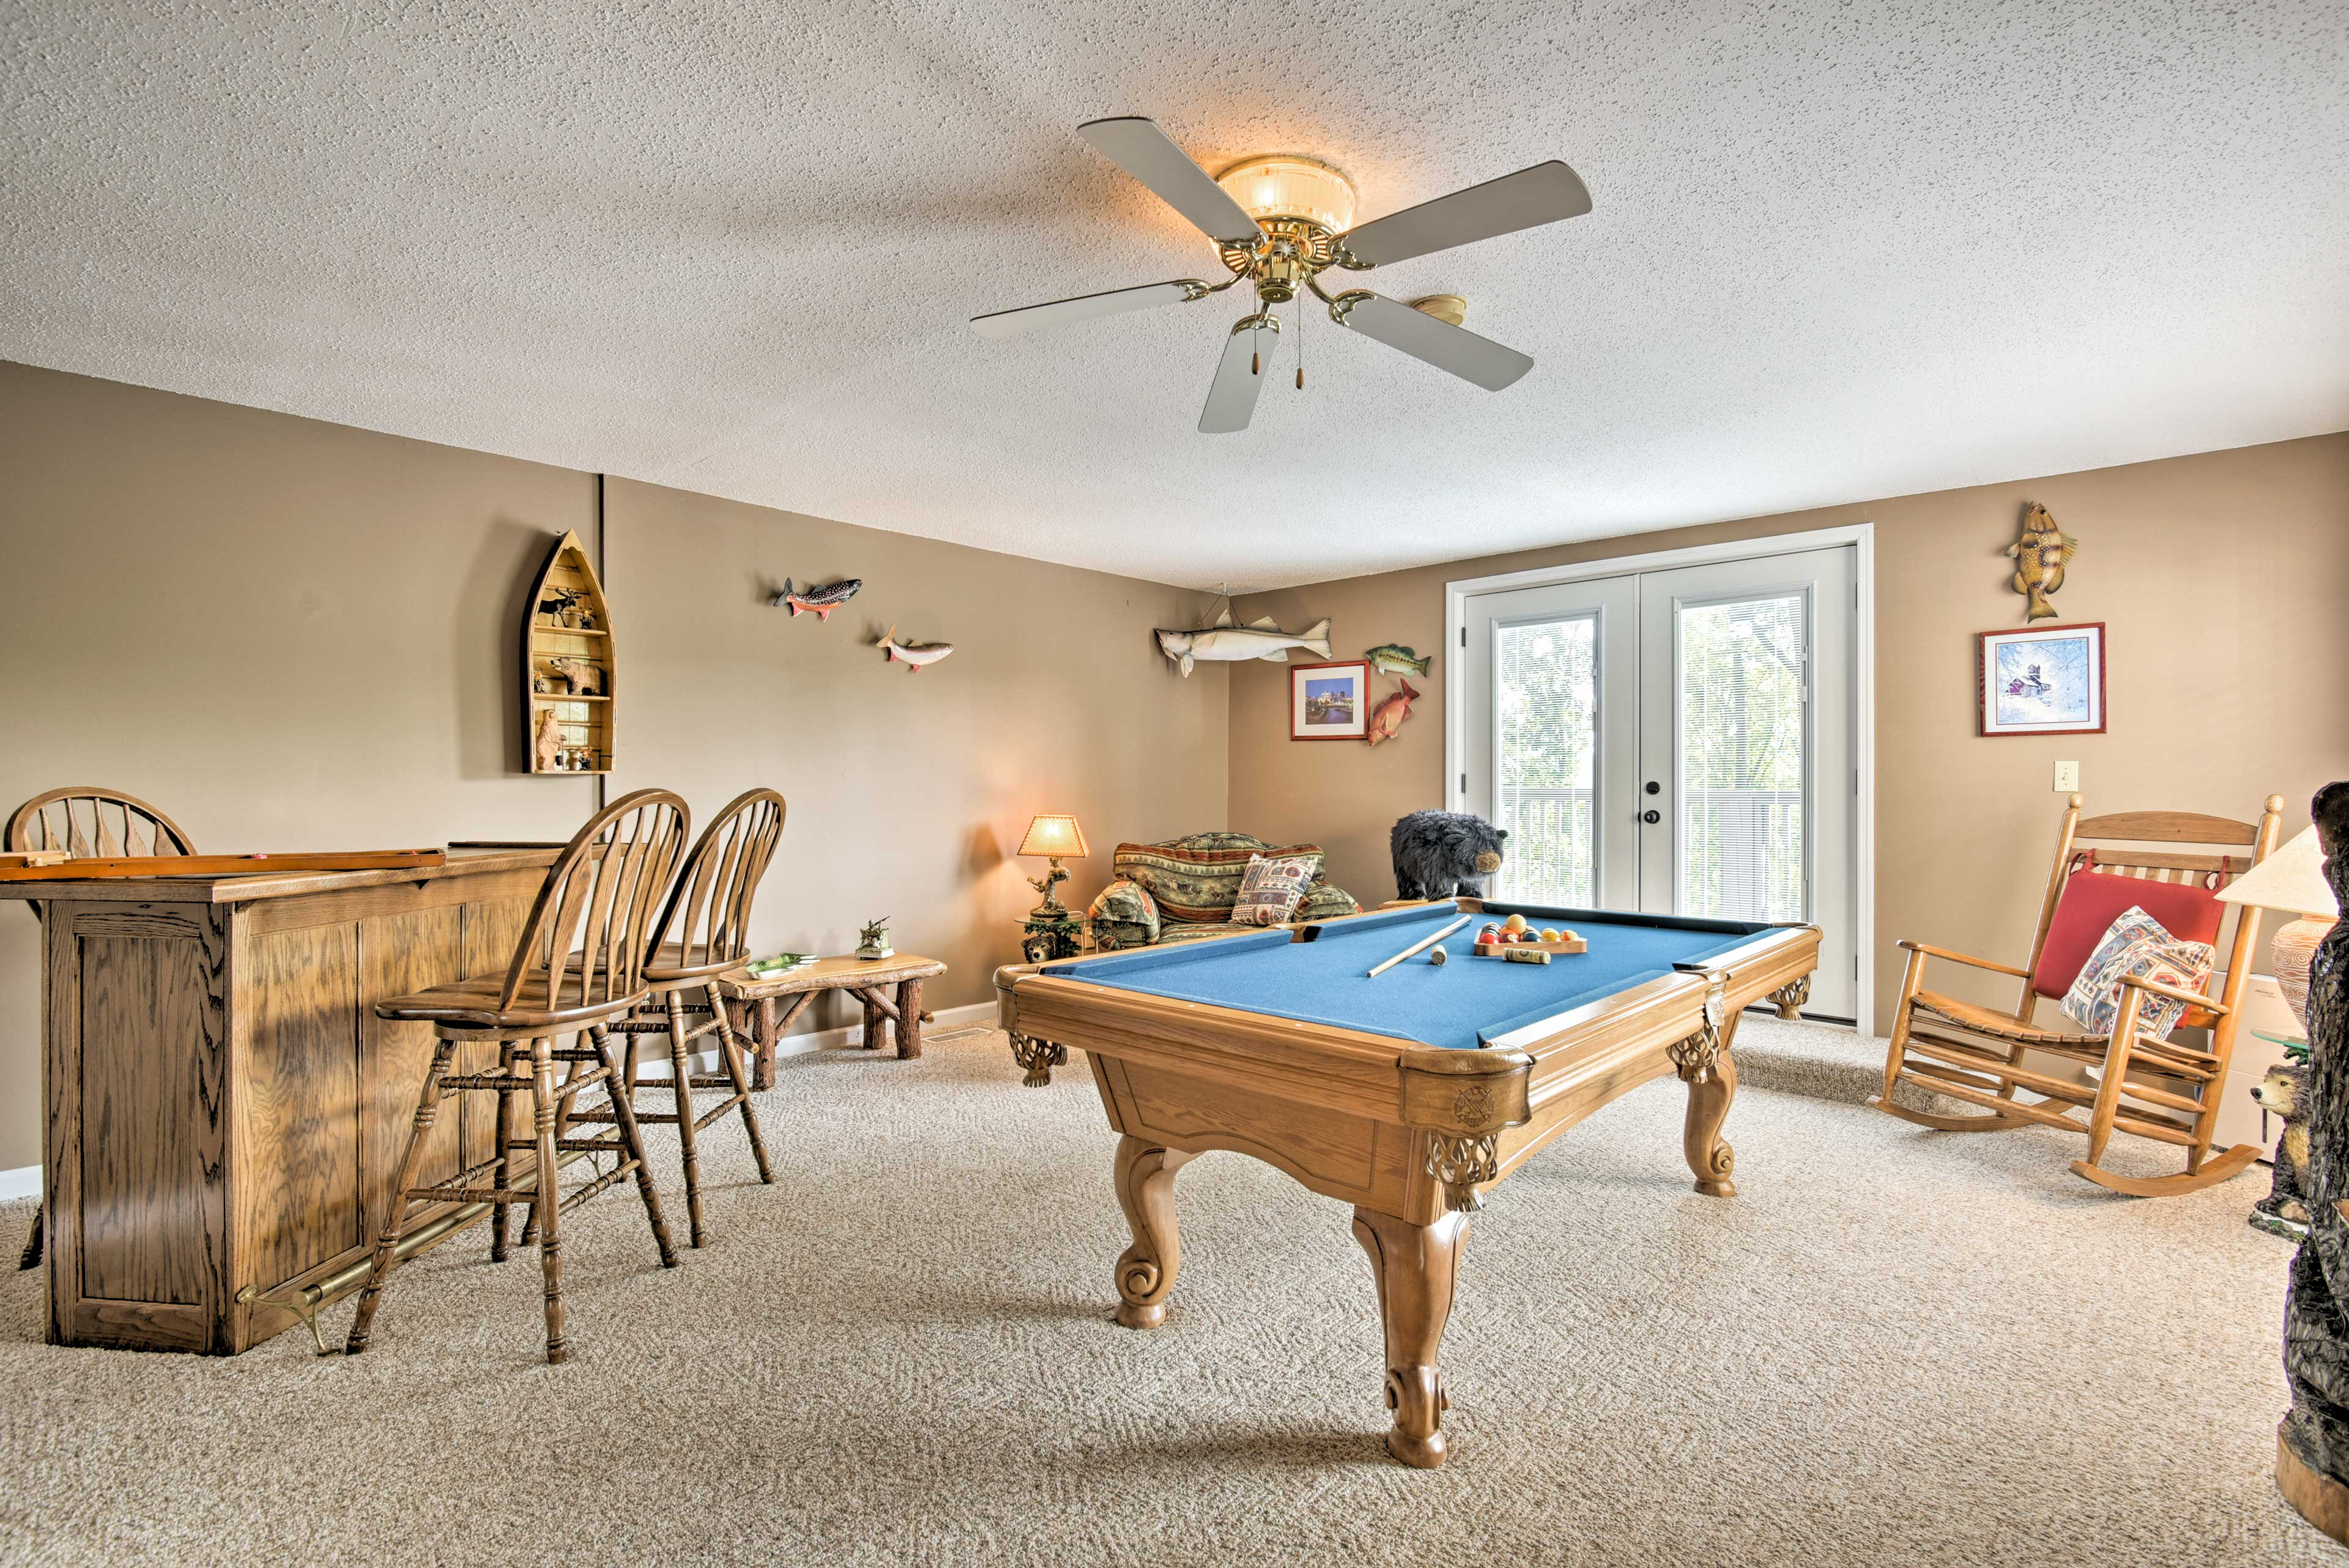 The game room houses a pool table.